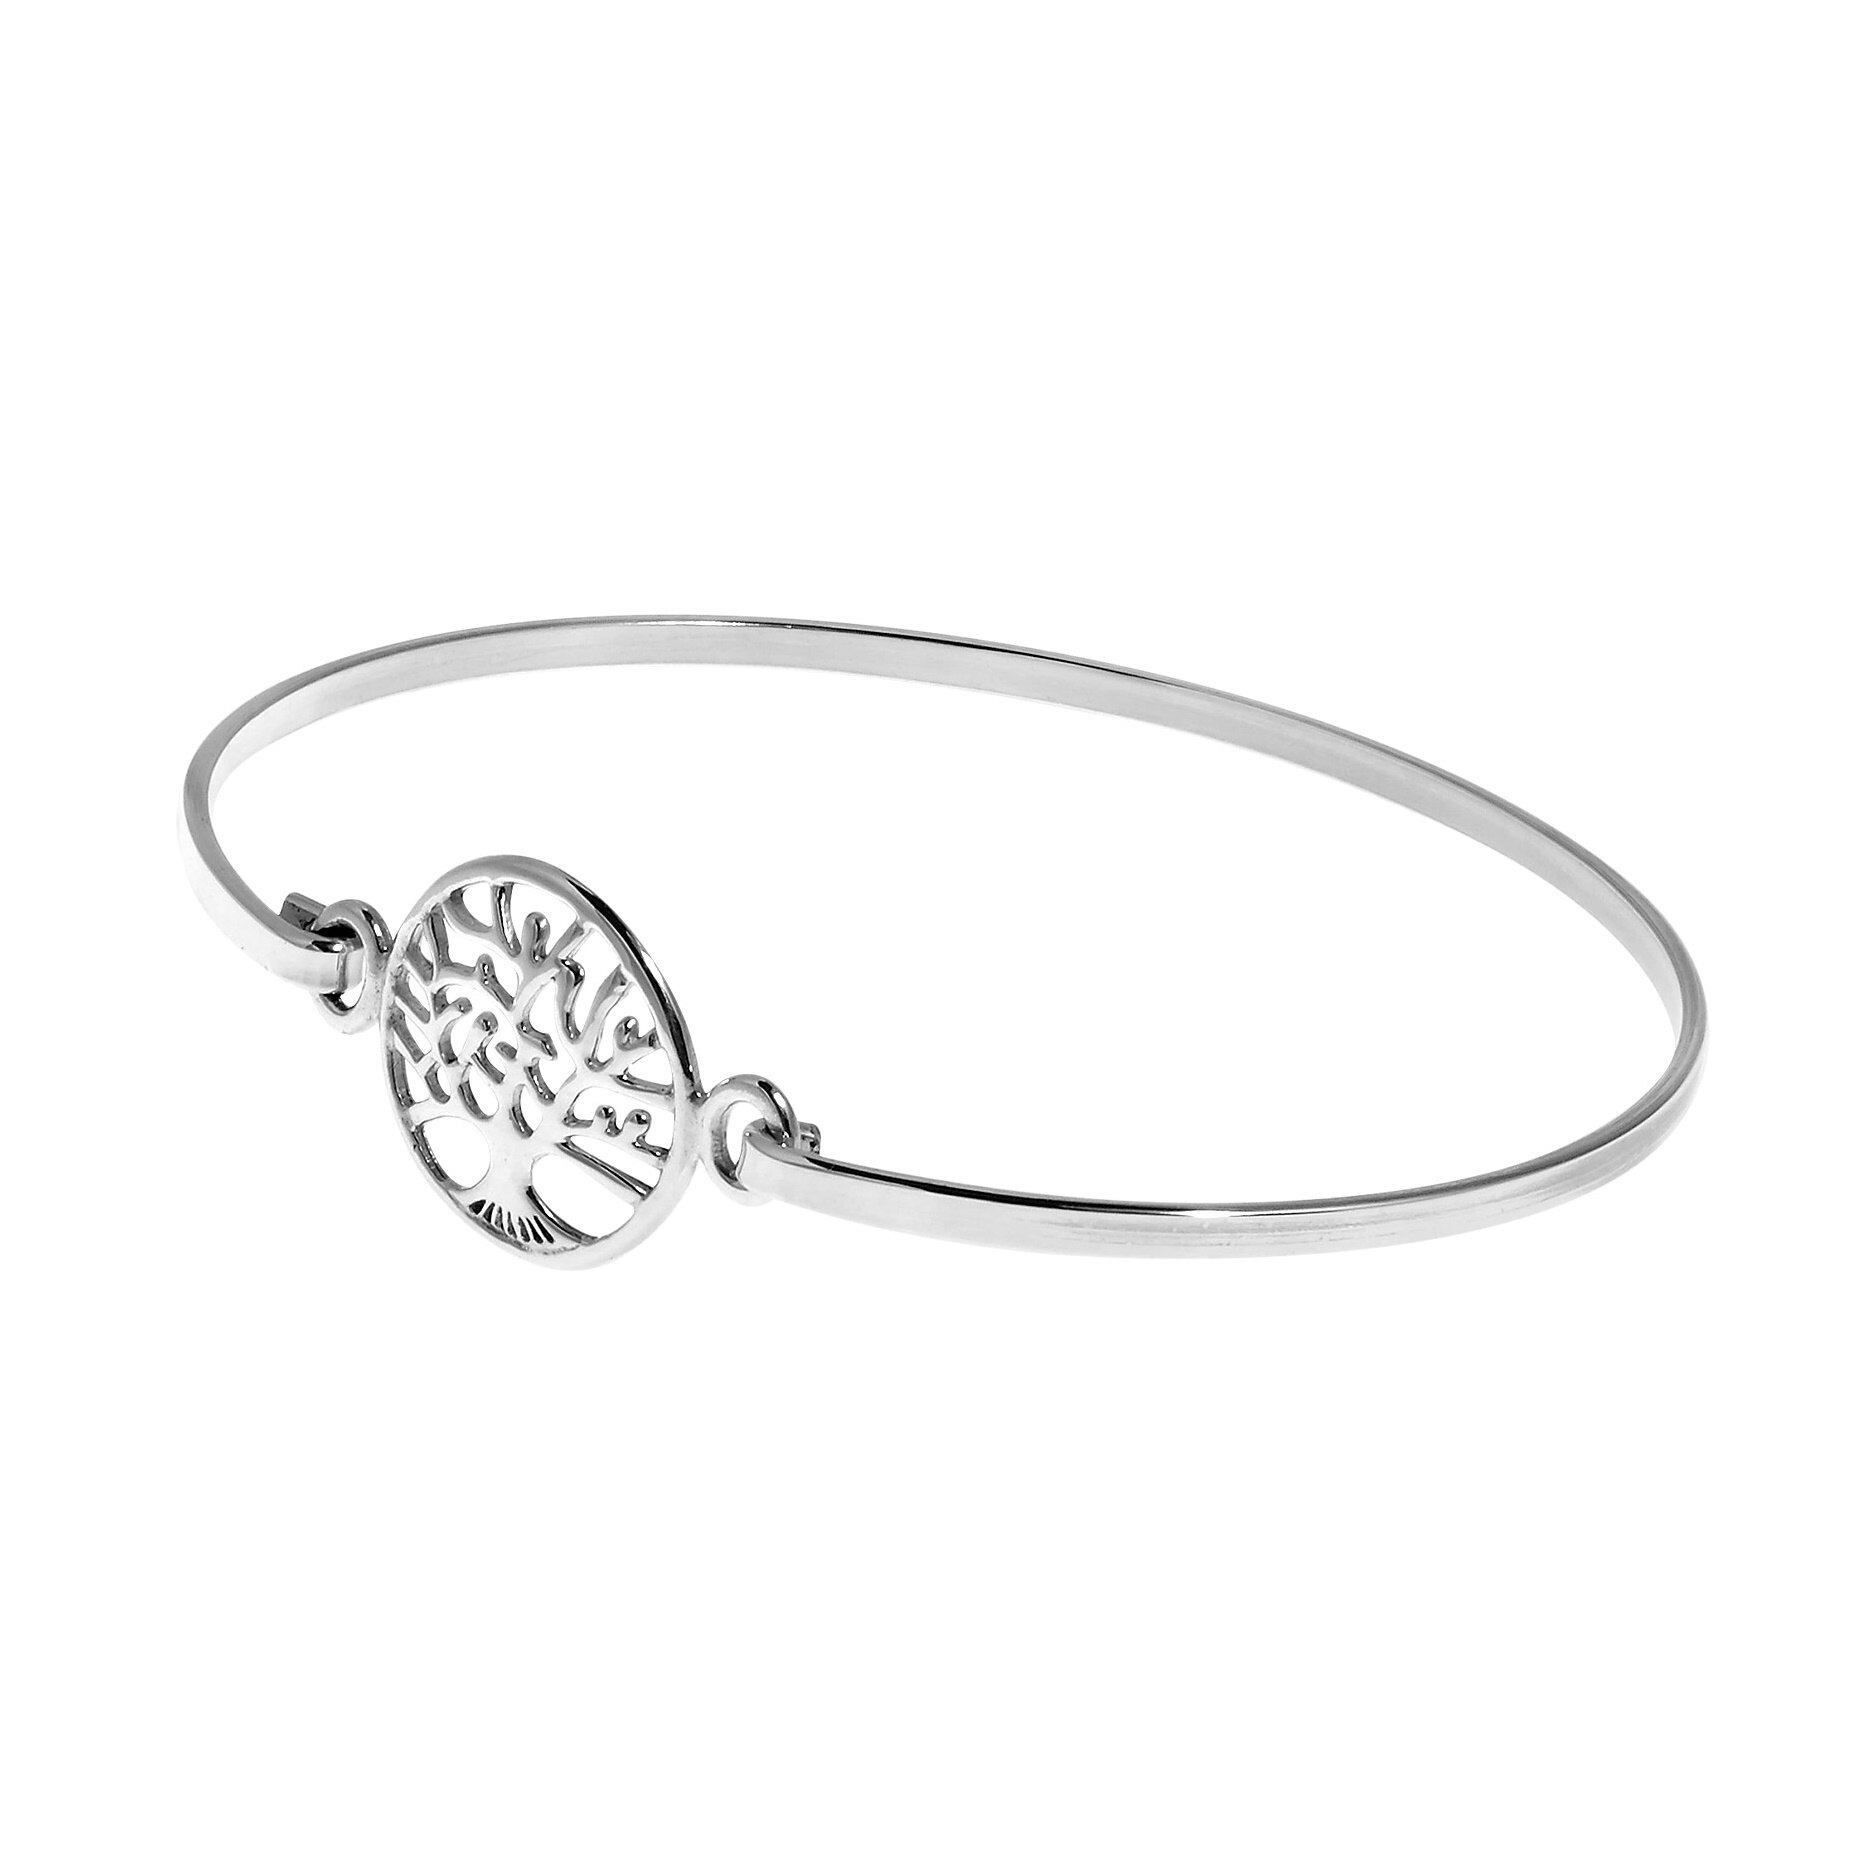 Mystical Tree Of Life .925 Sterling Silver Bangle Bracelet (Thailand) 1